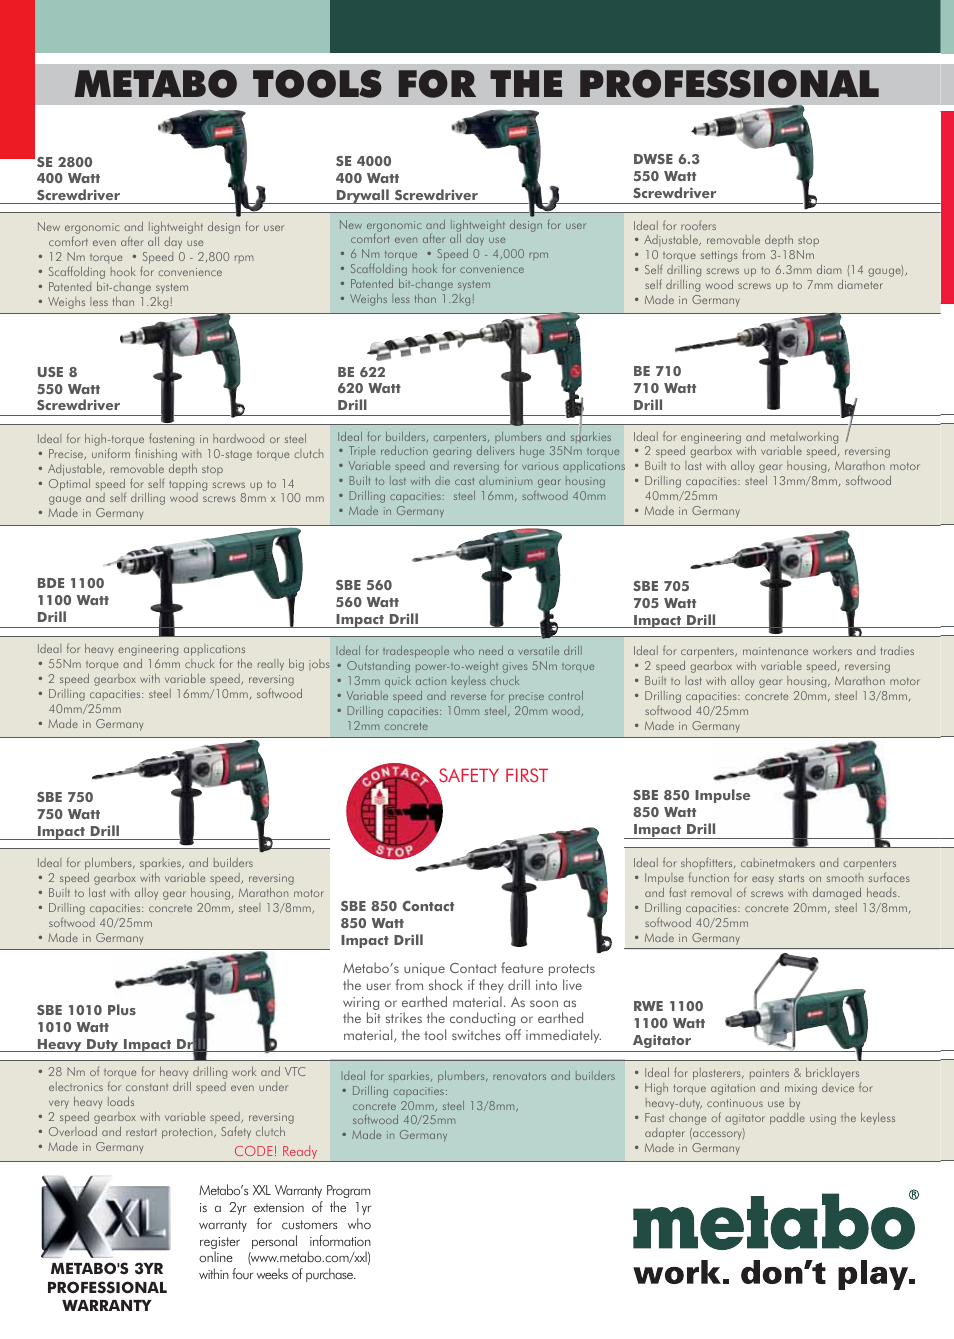 Metabo tools for the professional, Safety first | Hitachi DS14DVF3